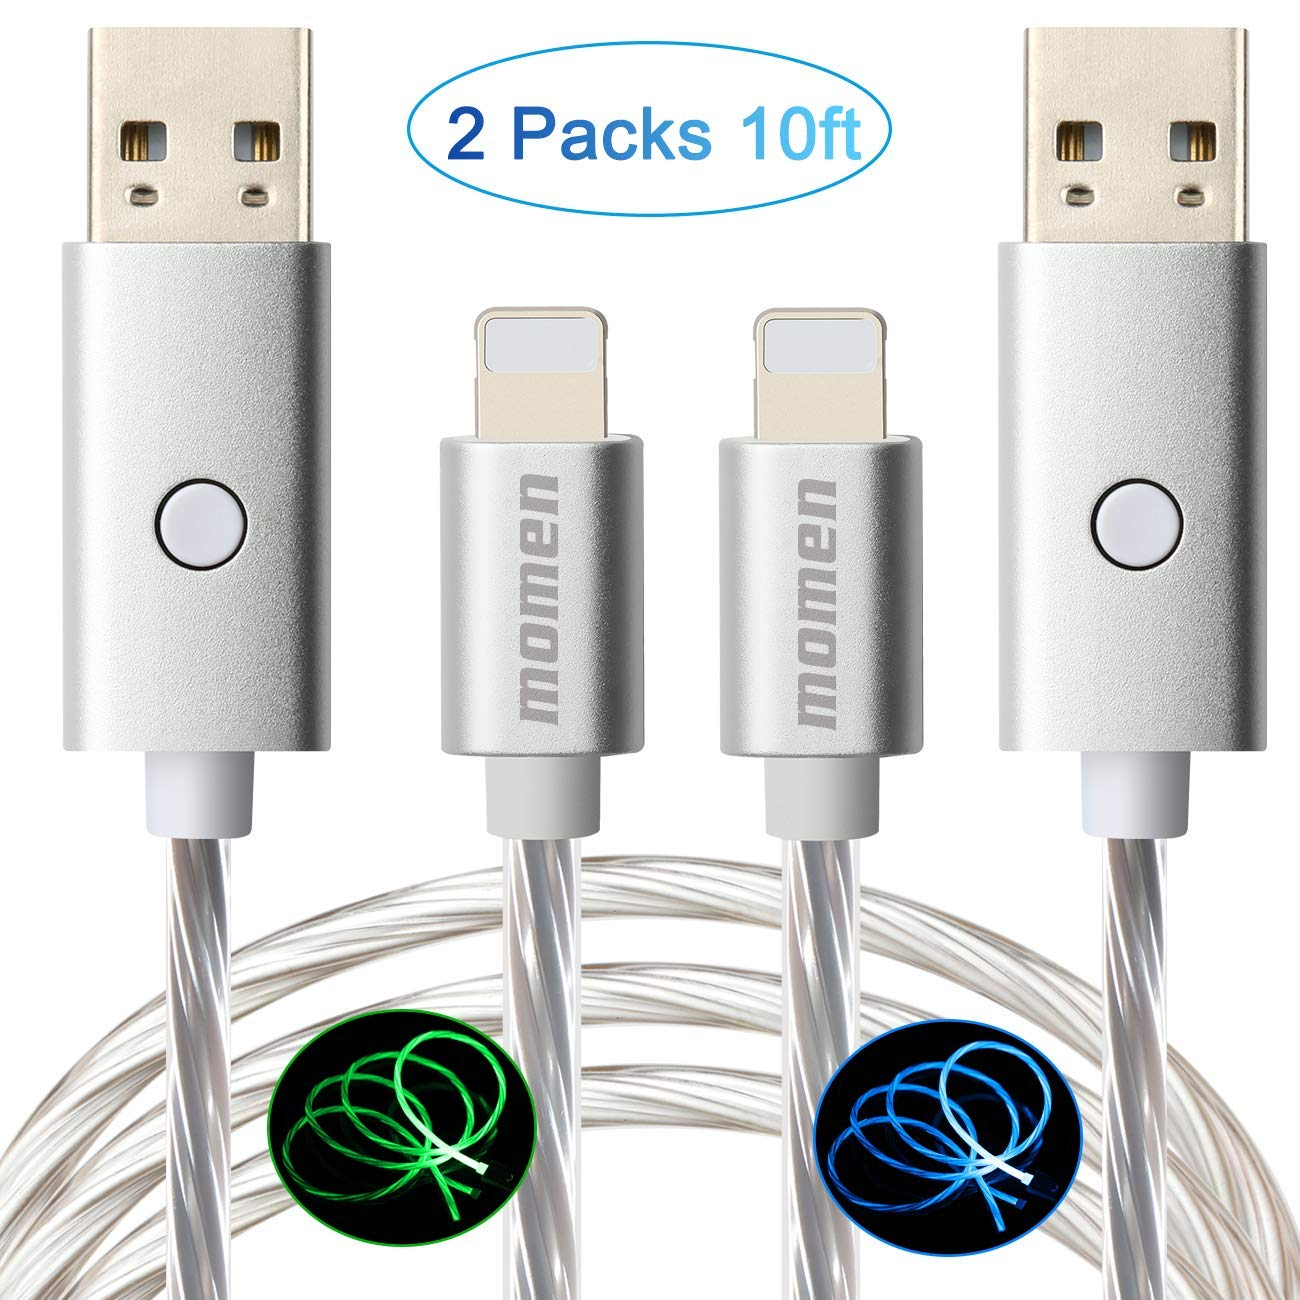 Great iPhone cords